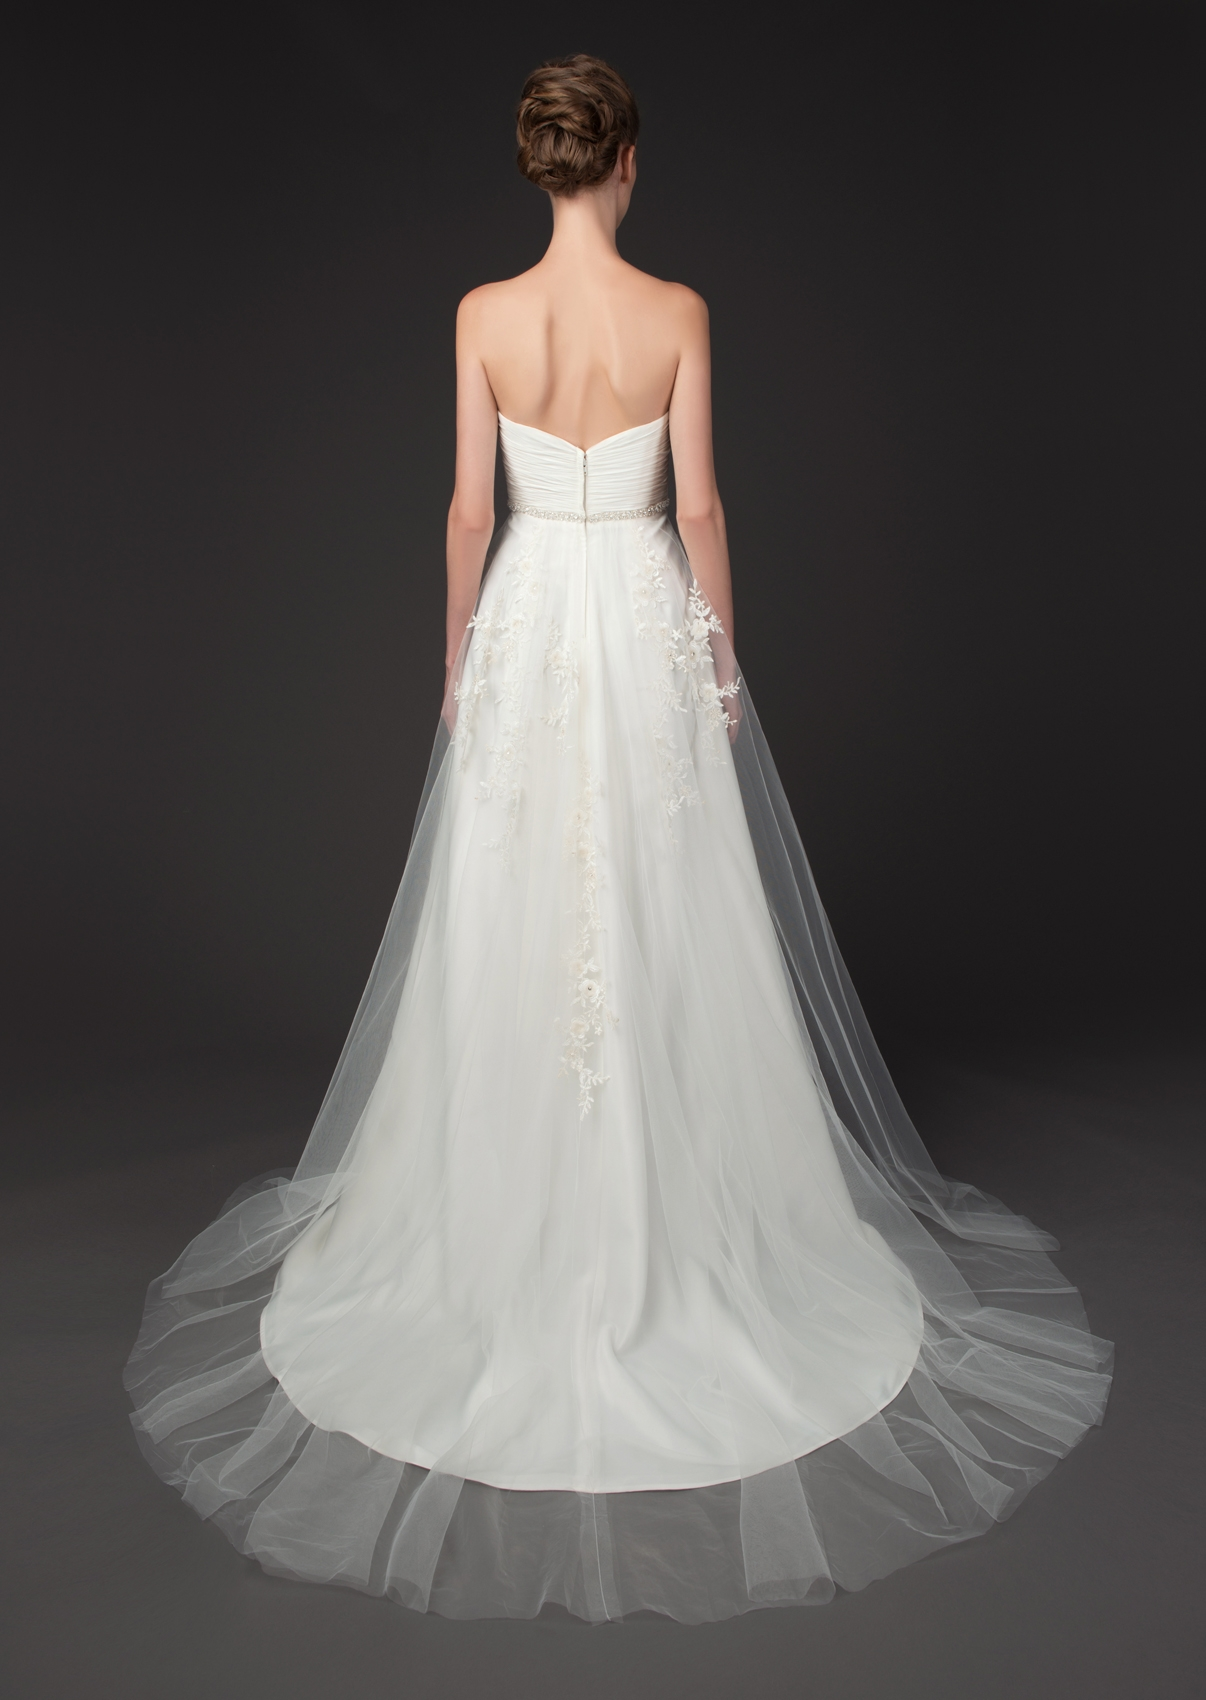 winnie-couture-wedding-dresses-fall-2014-diamond-label-collection-32-01202014